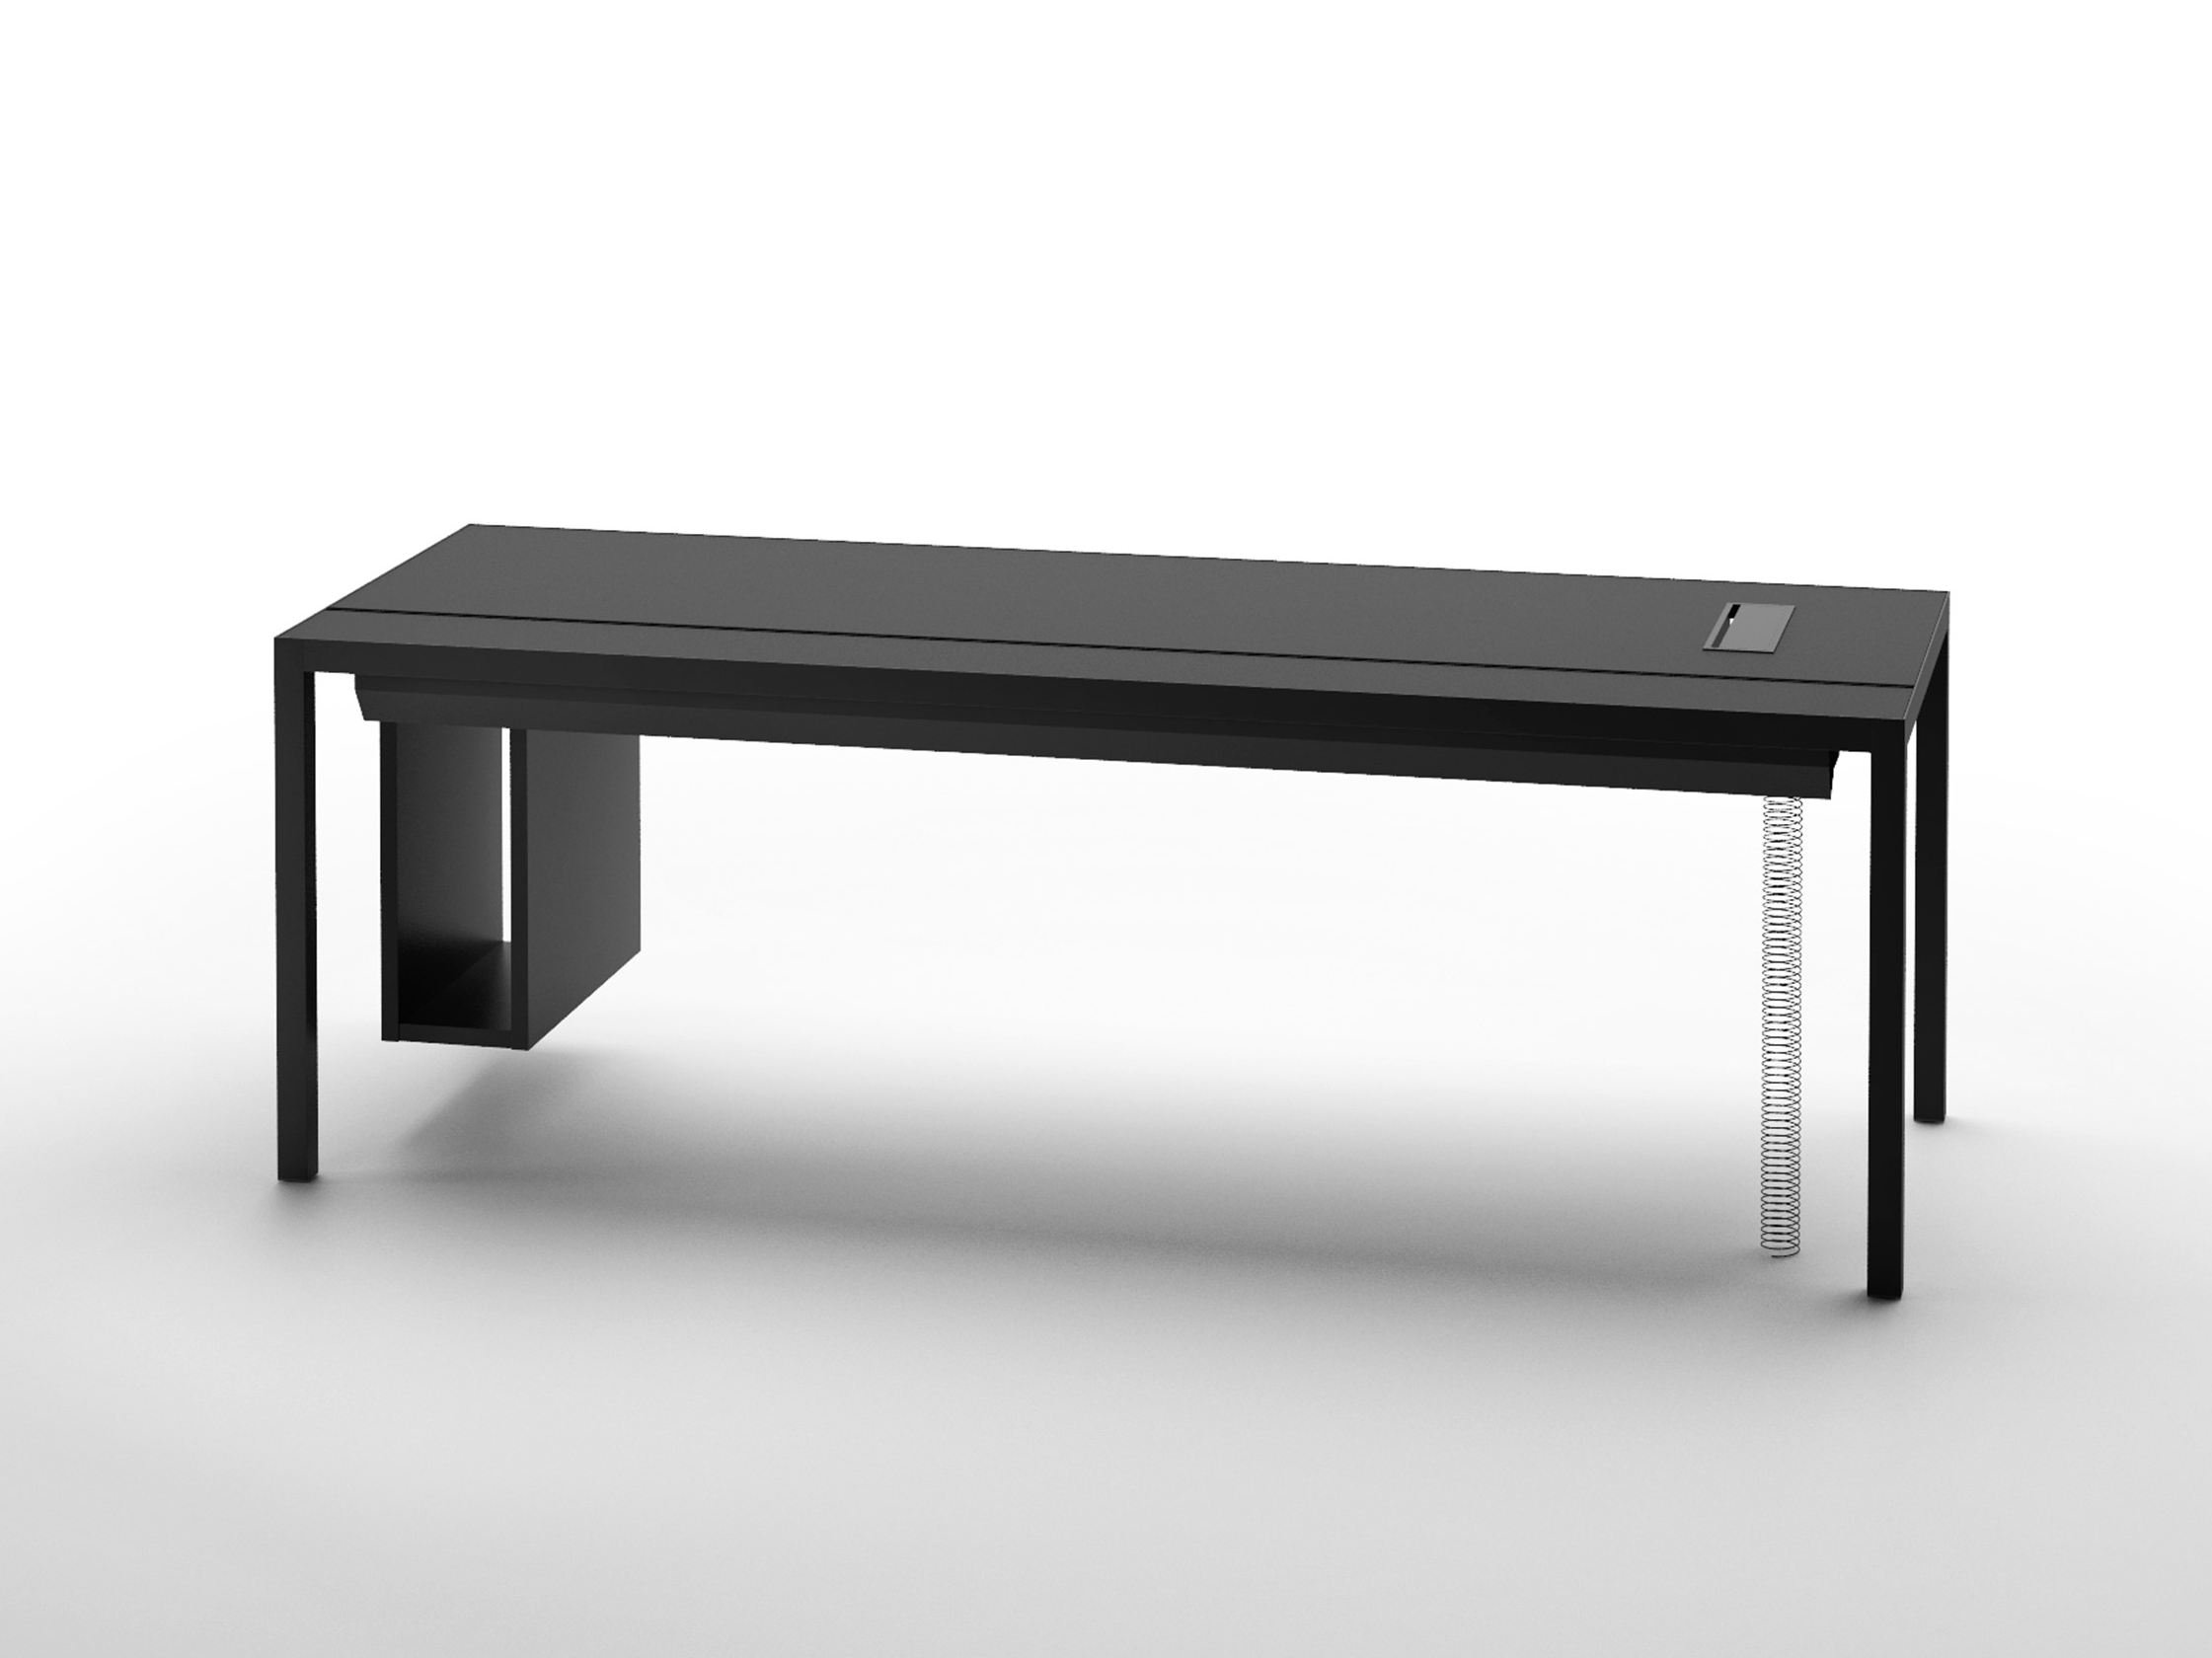 Desk 3 0 by mdf italia design francesco bettoni bruno for Mdfitalia it